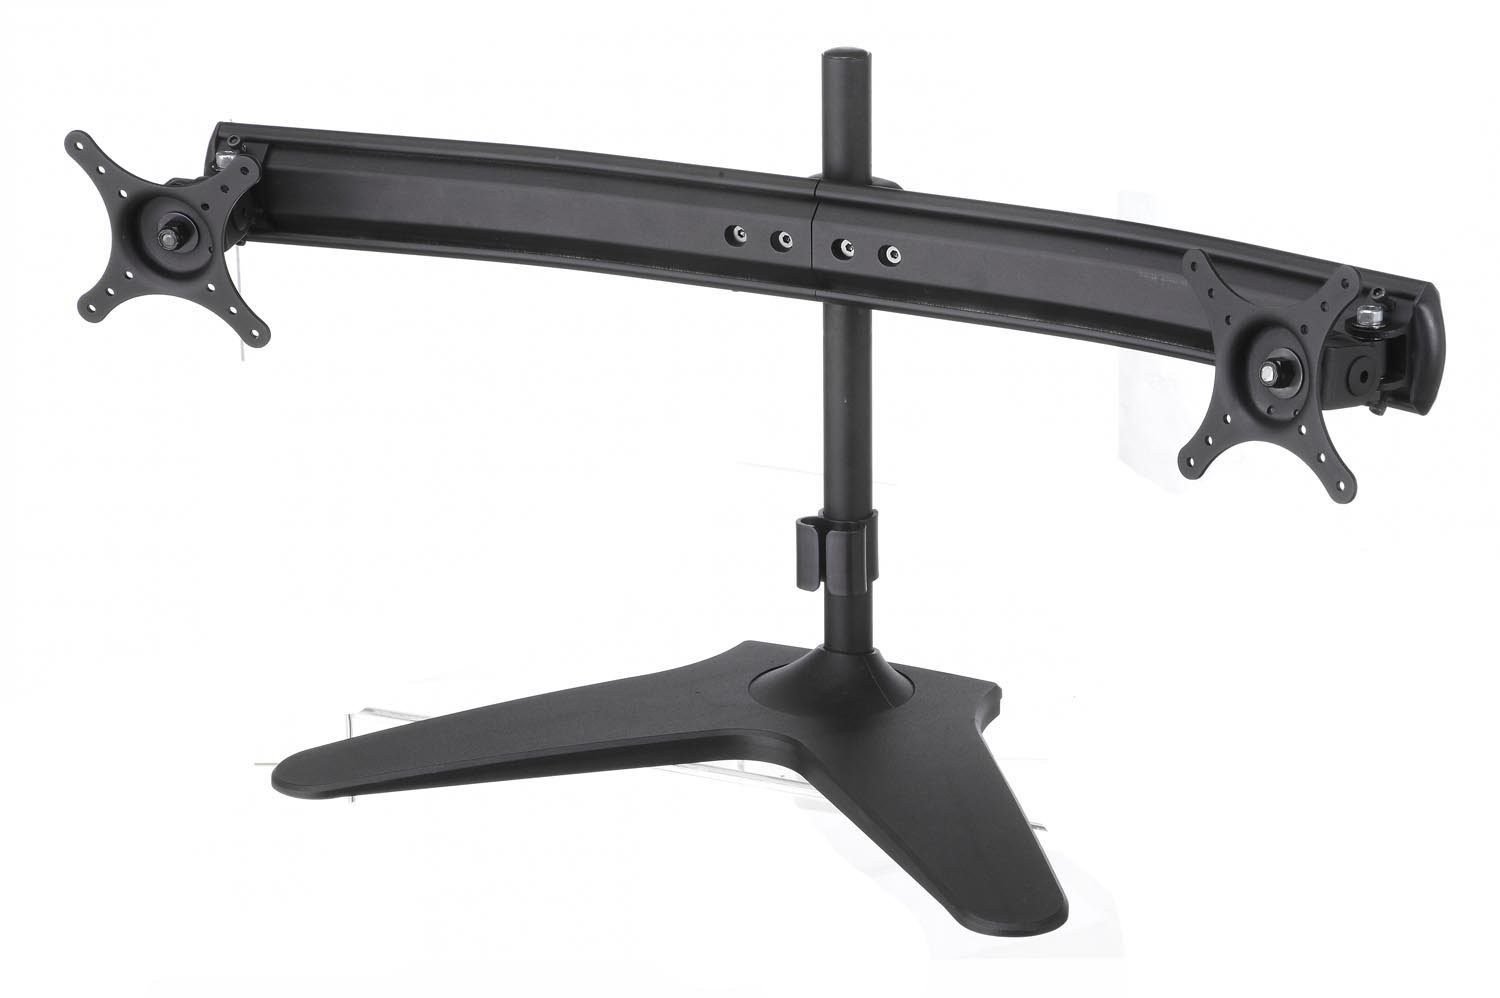 Elitech Dual LCD Monitor Stand Mount Free Standing, Monitor Sliding Arm, Refurbished